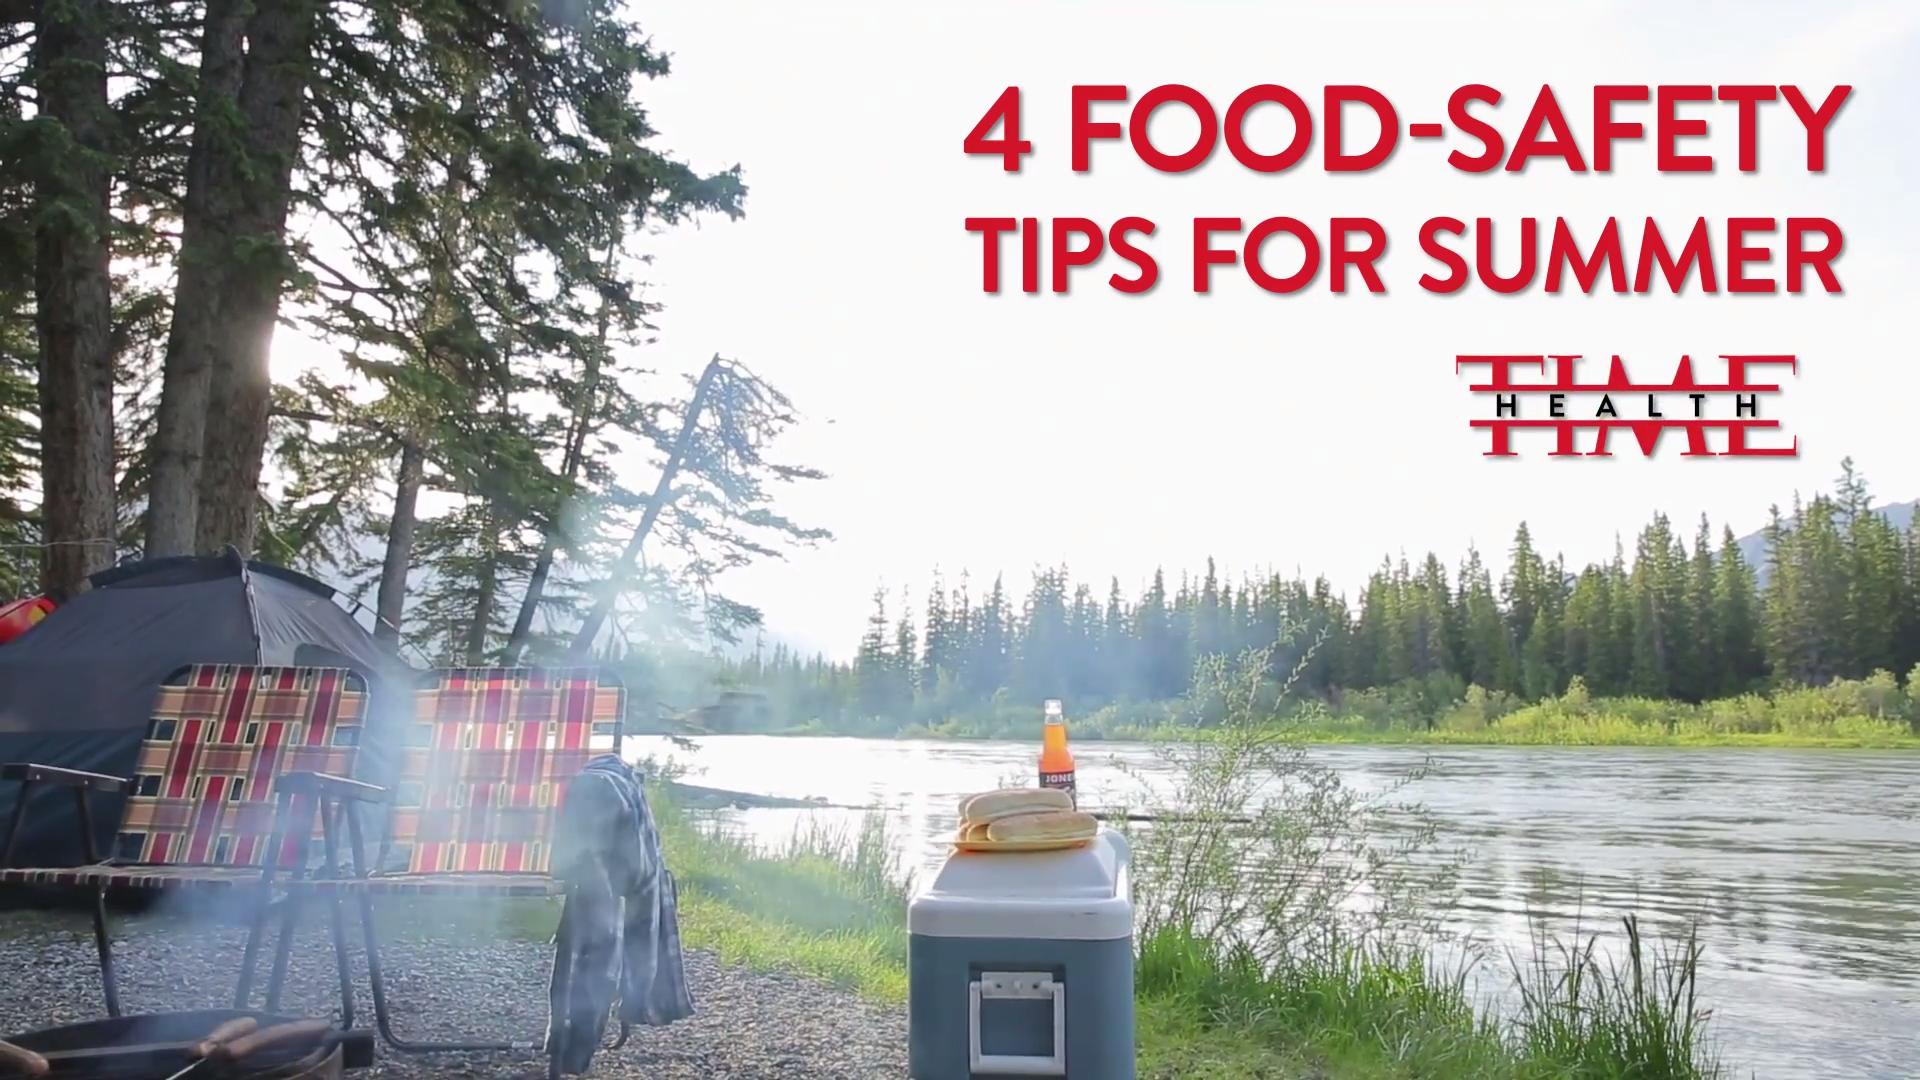 4 Food-Safety Tips For Summer